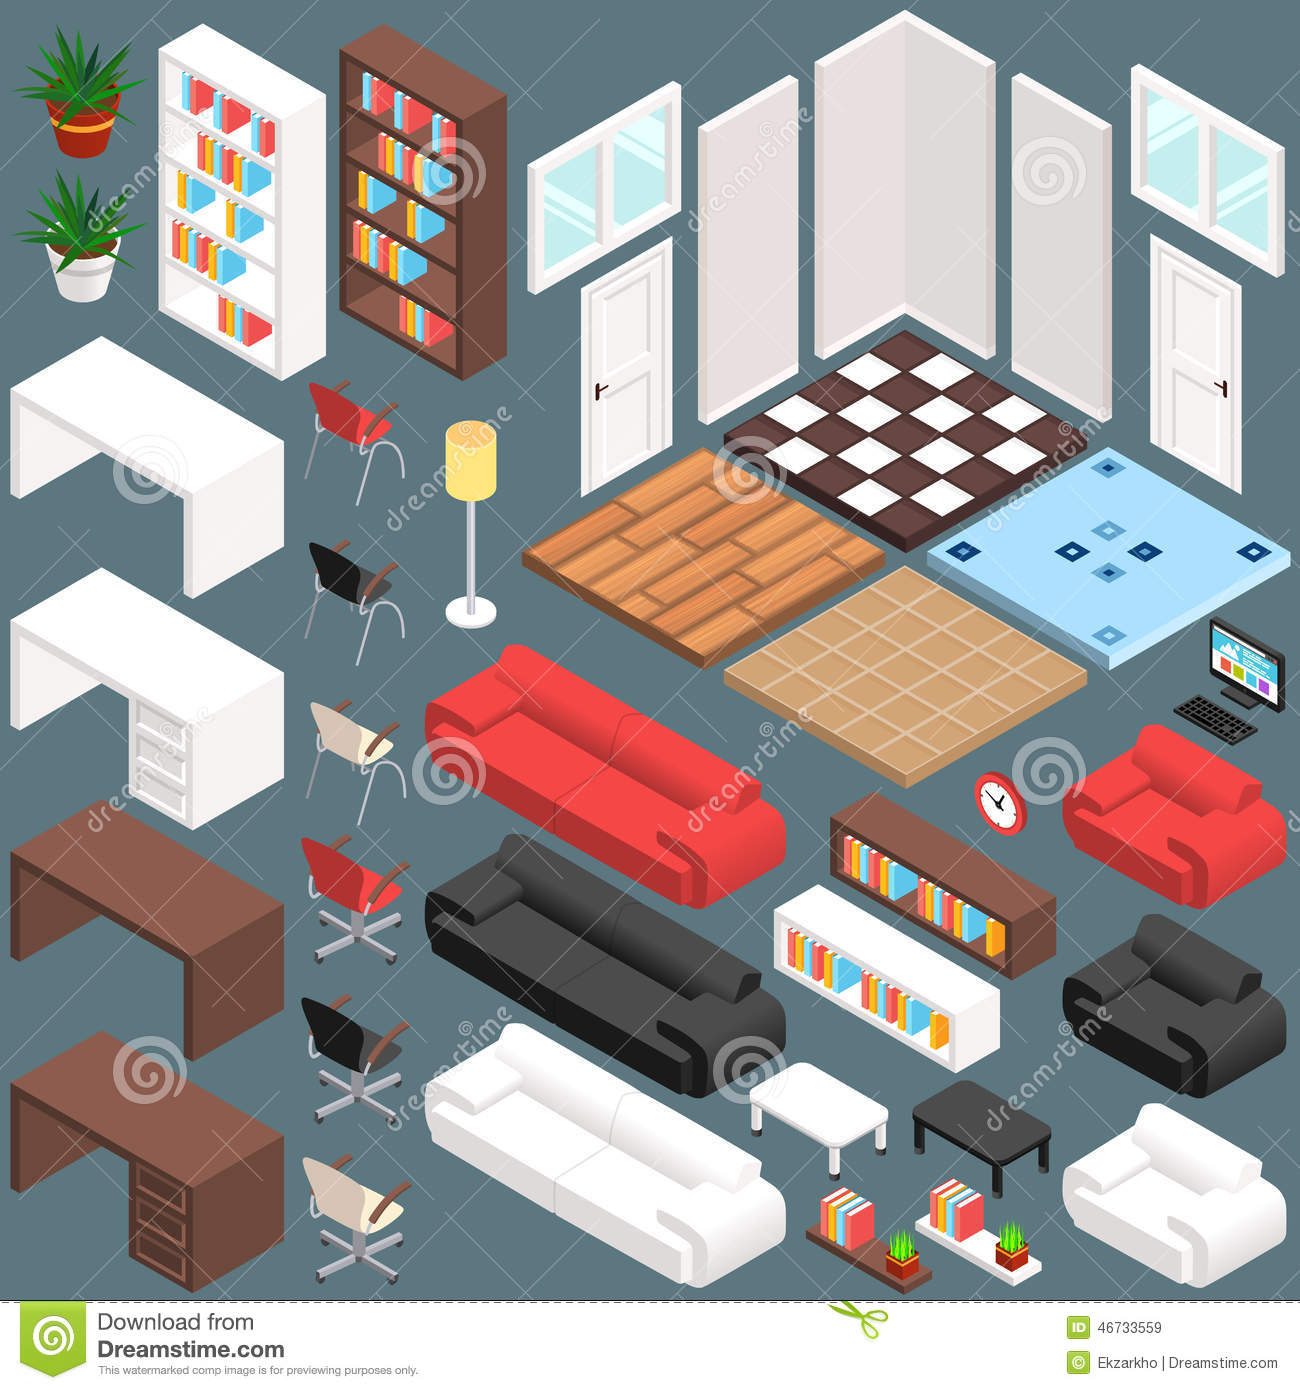 Isometric office planning 3d vector creation kit stock for 3d space planner